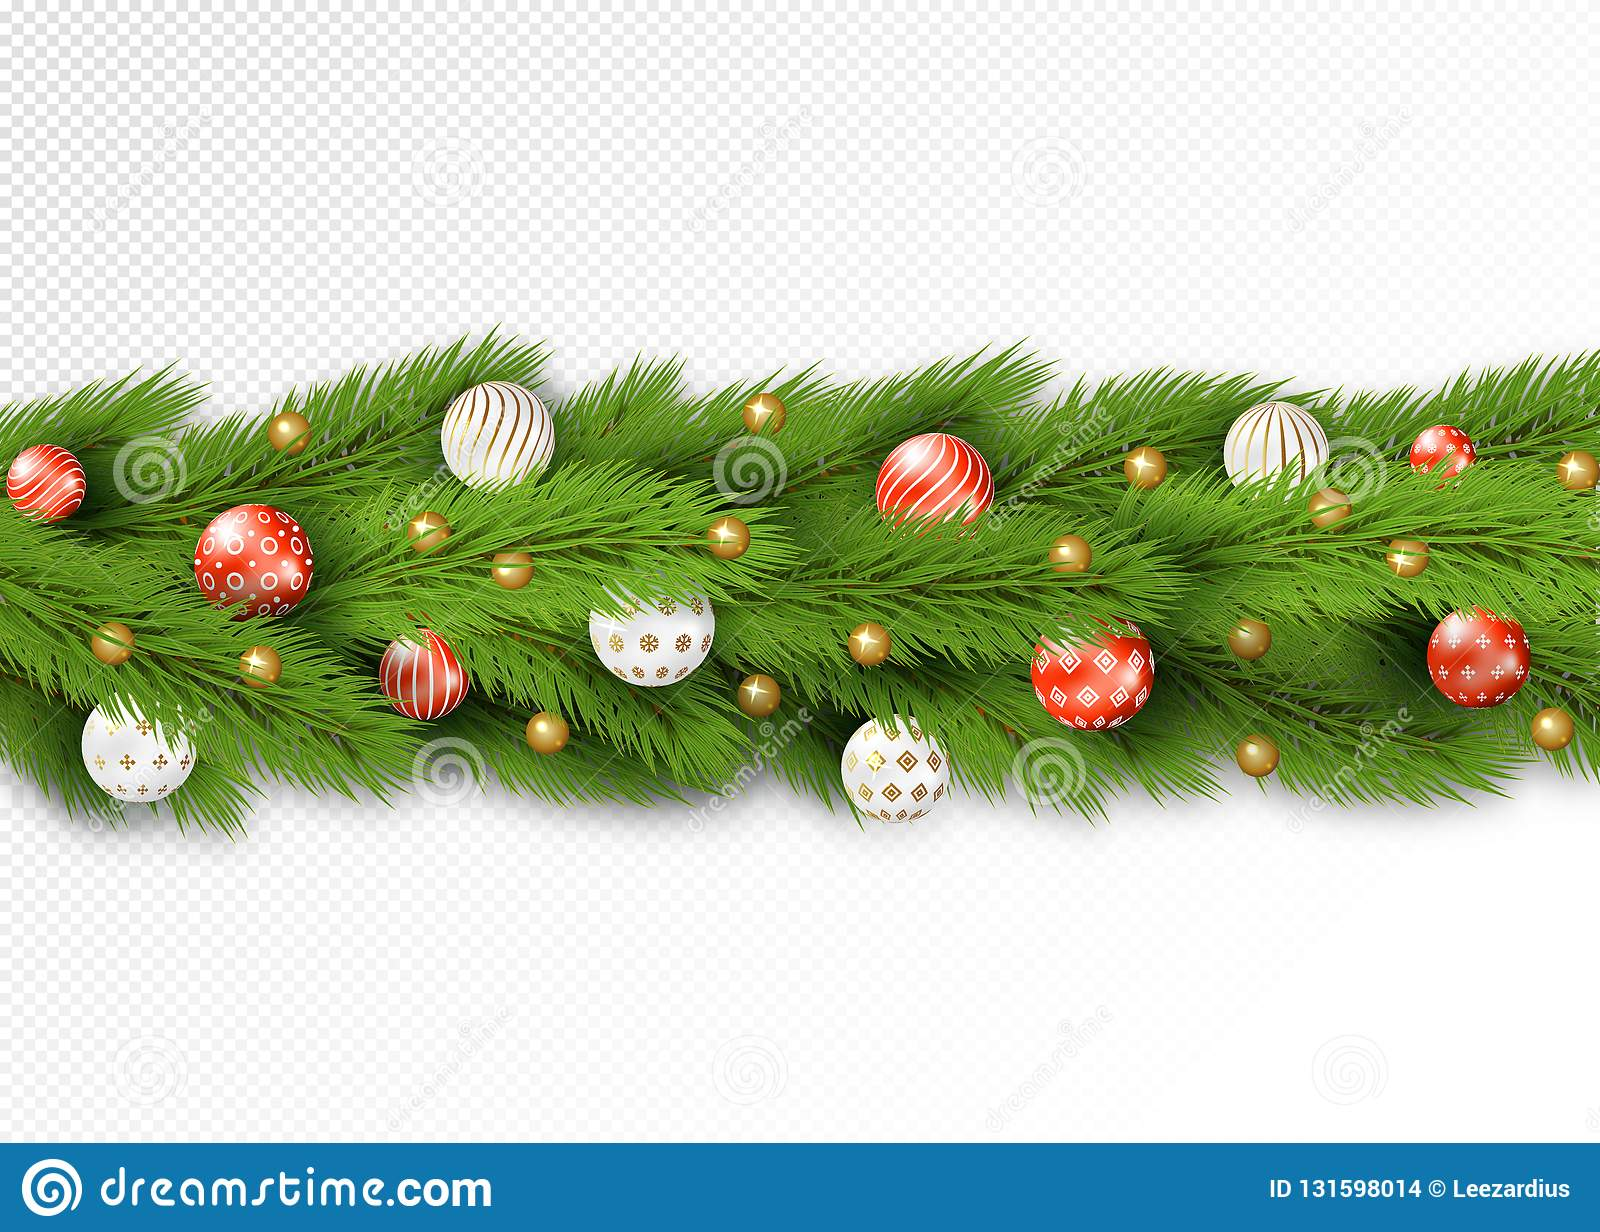 Detailed Christmas Garland Stock Vector Illustration Of Background